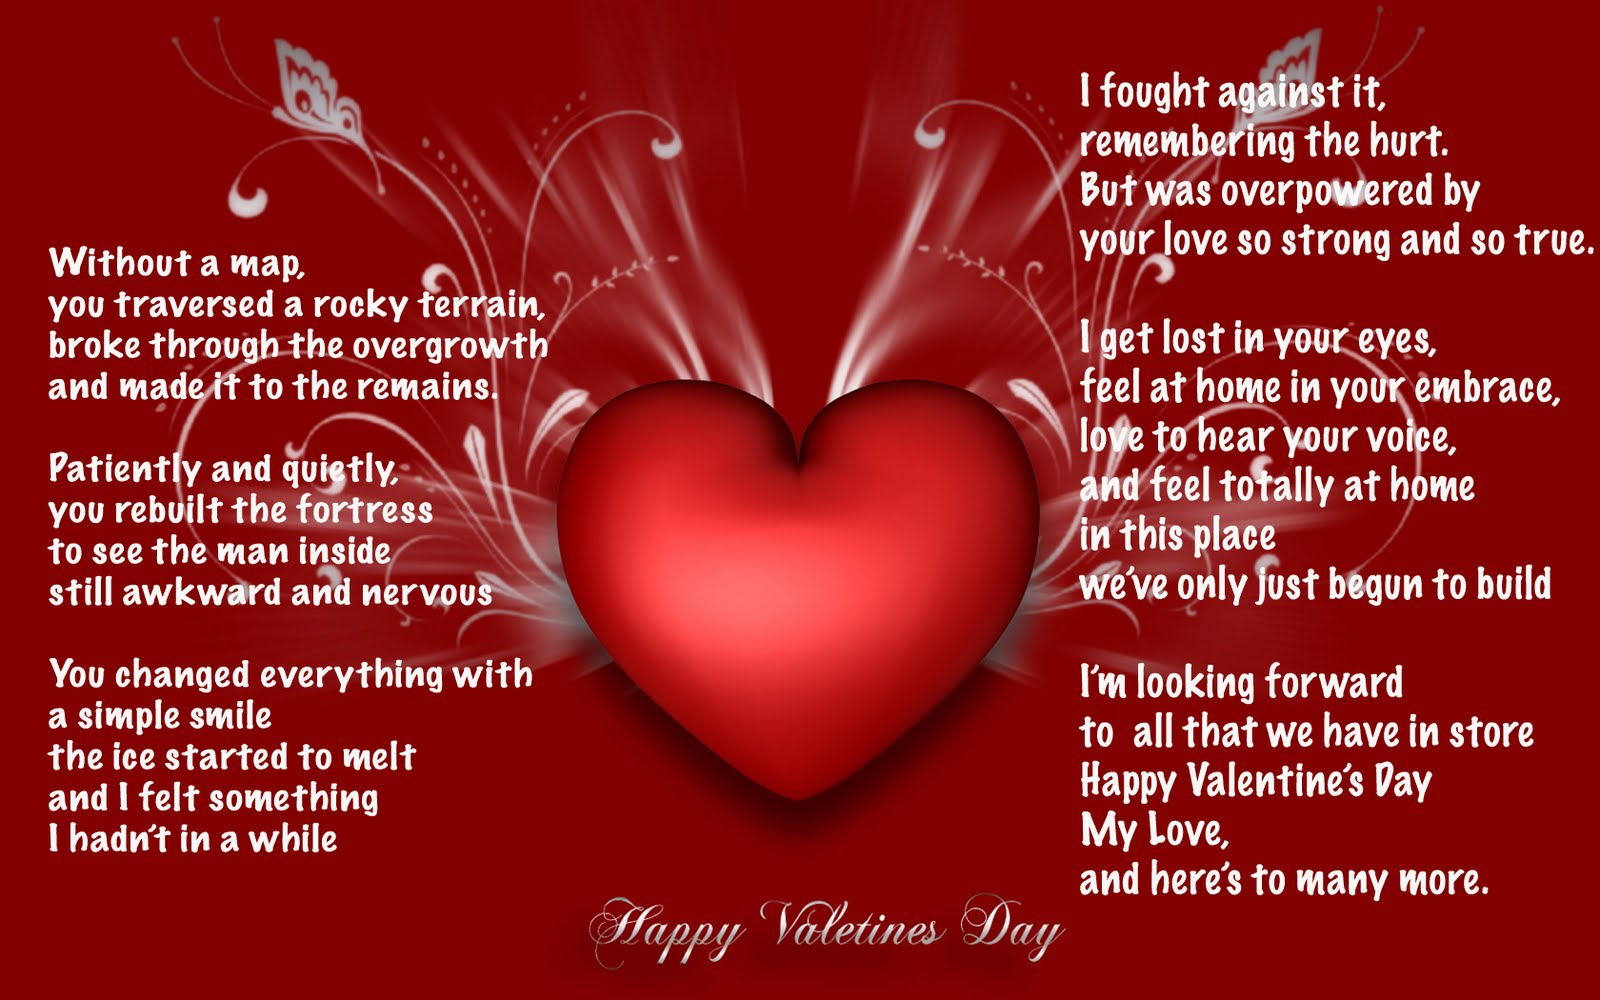 Valentines day quotes 2016 new latest pictures for Love valentines day quotes